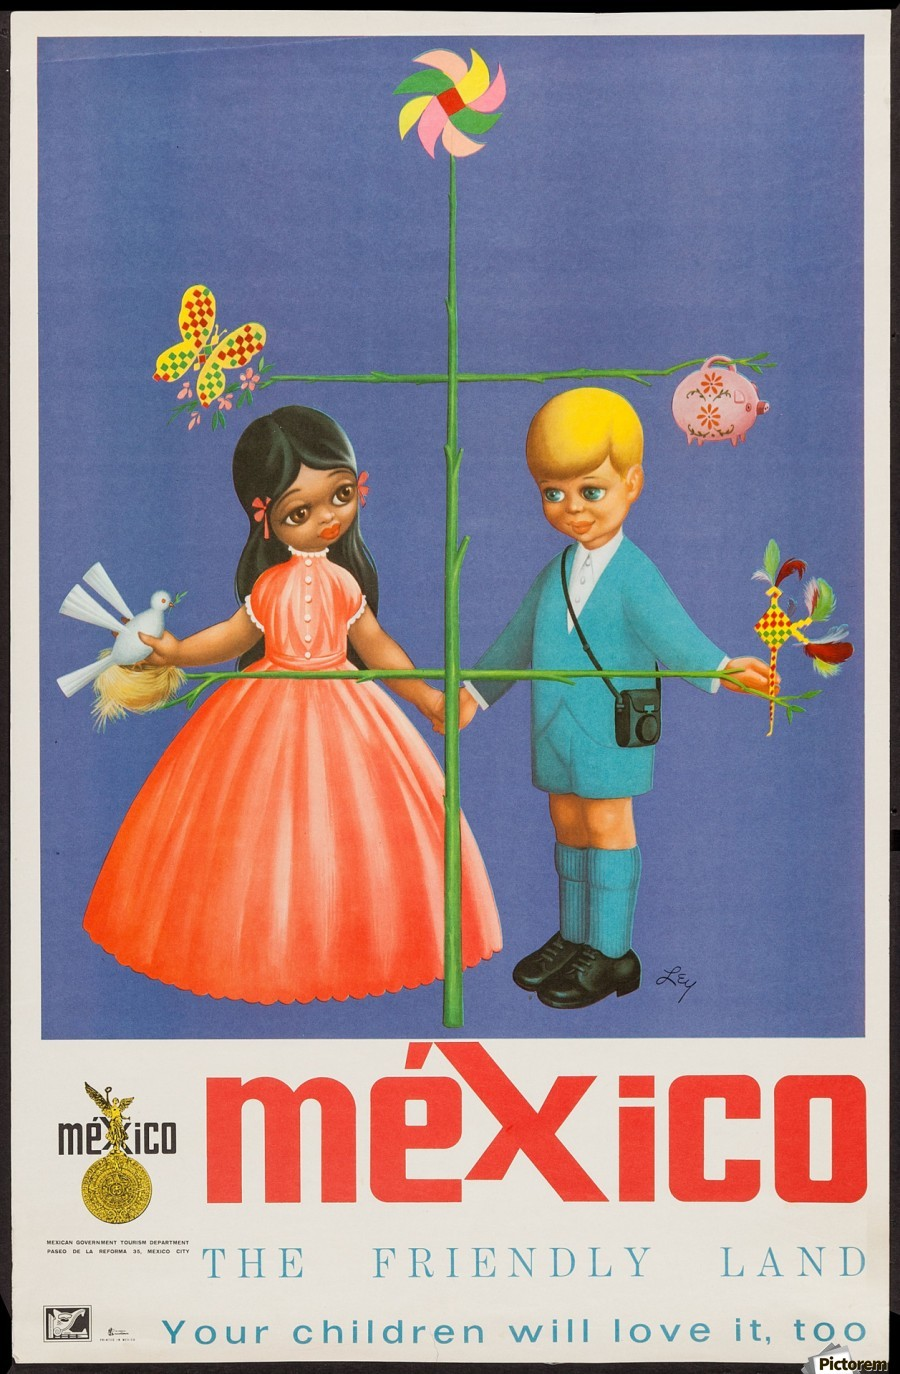 Mexico The friendly land  Print